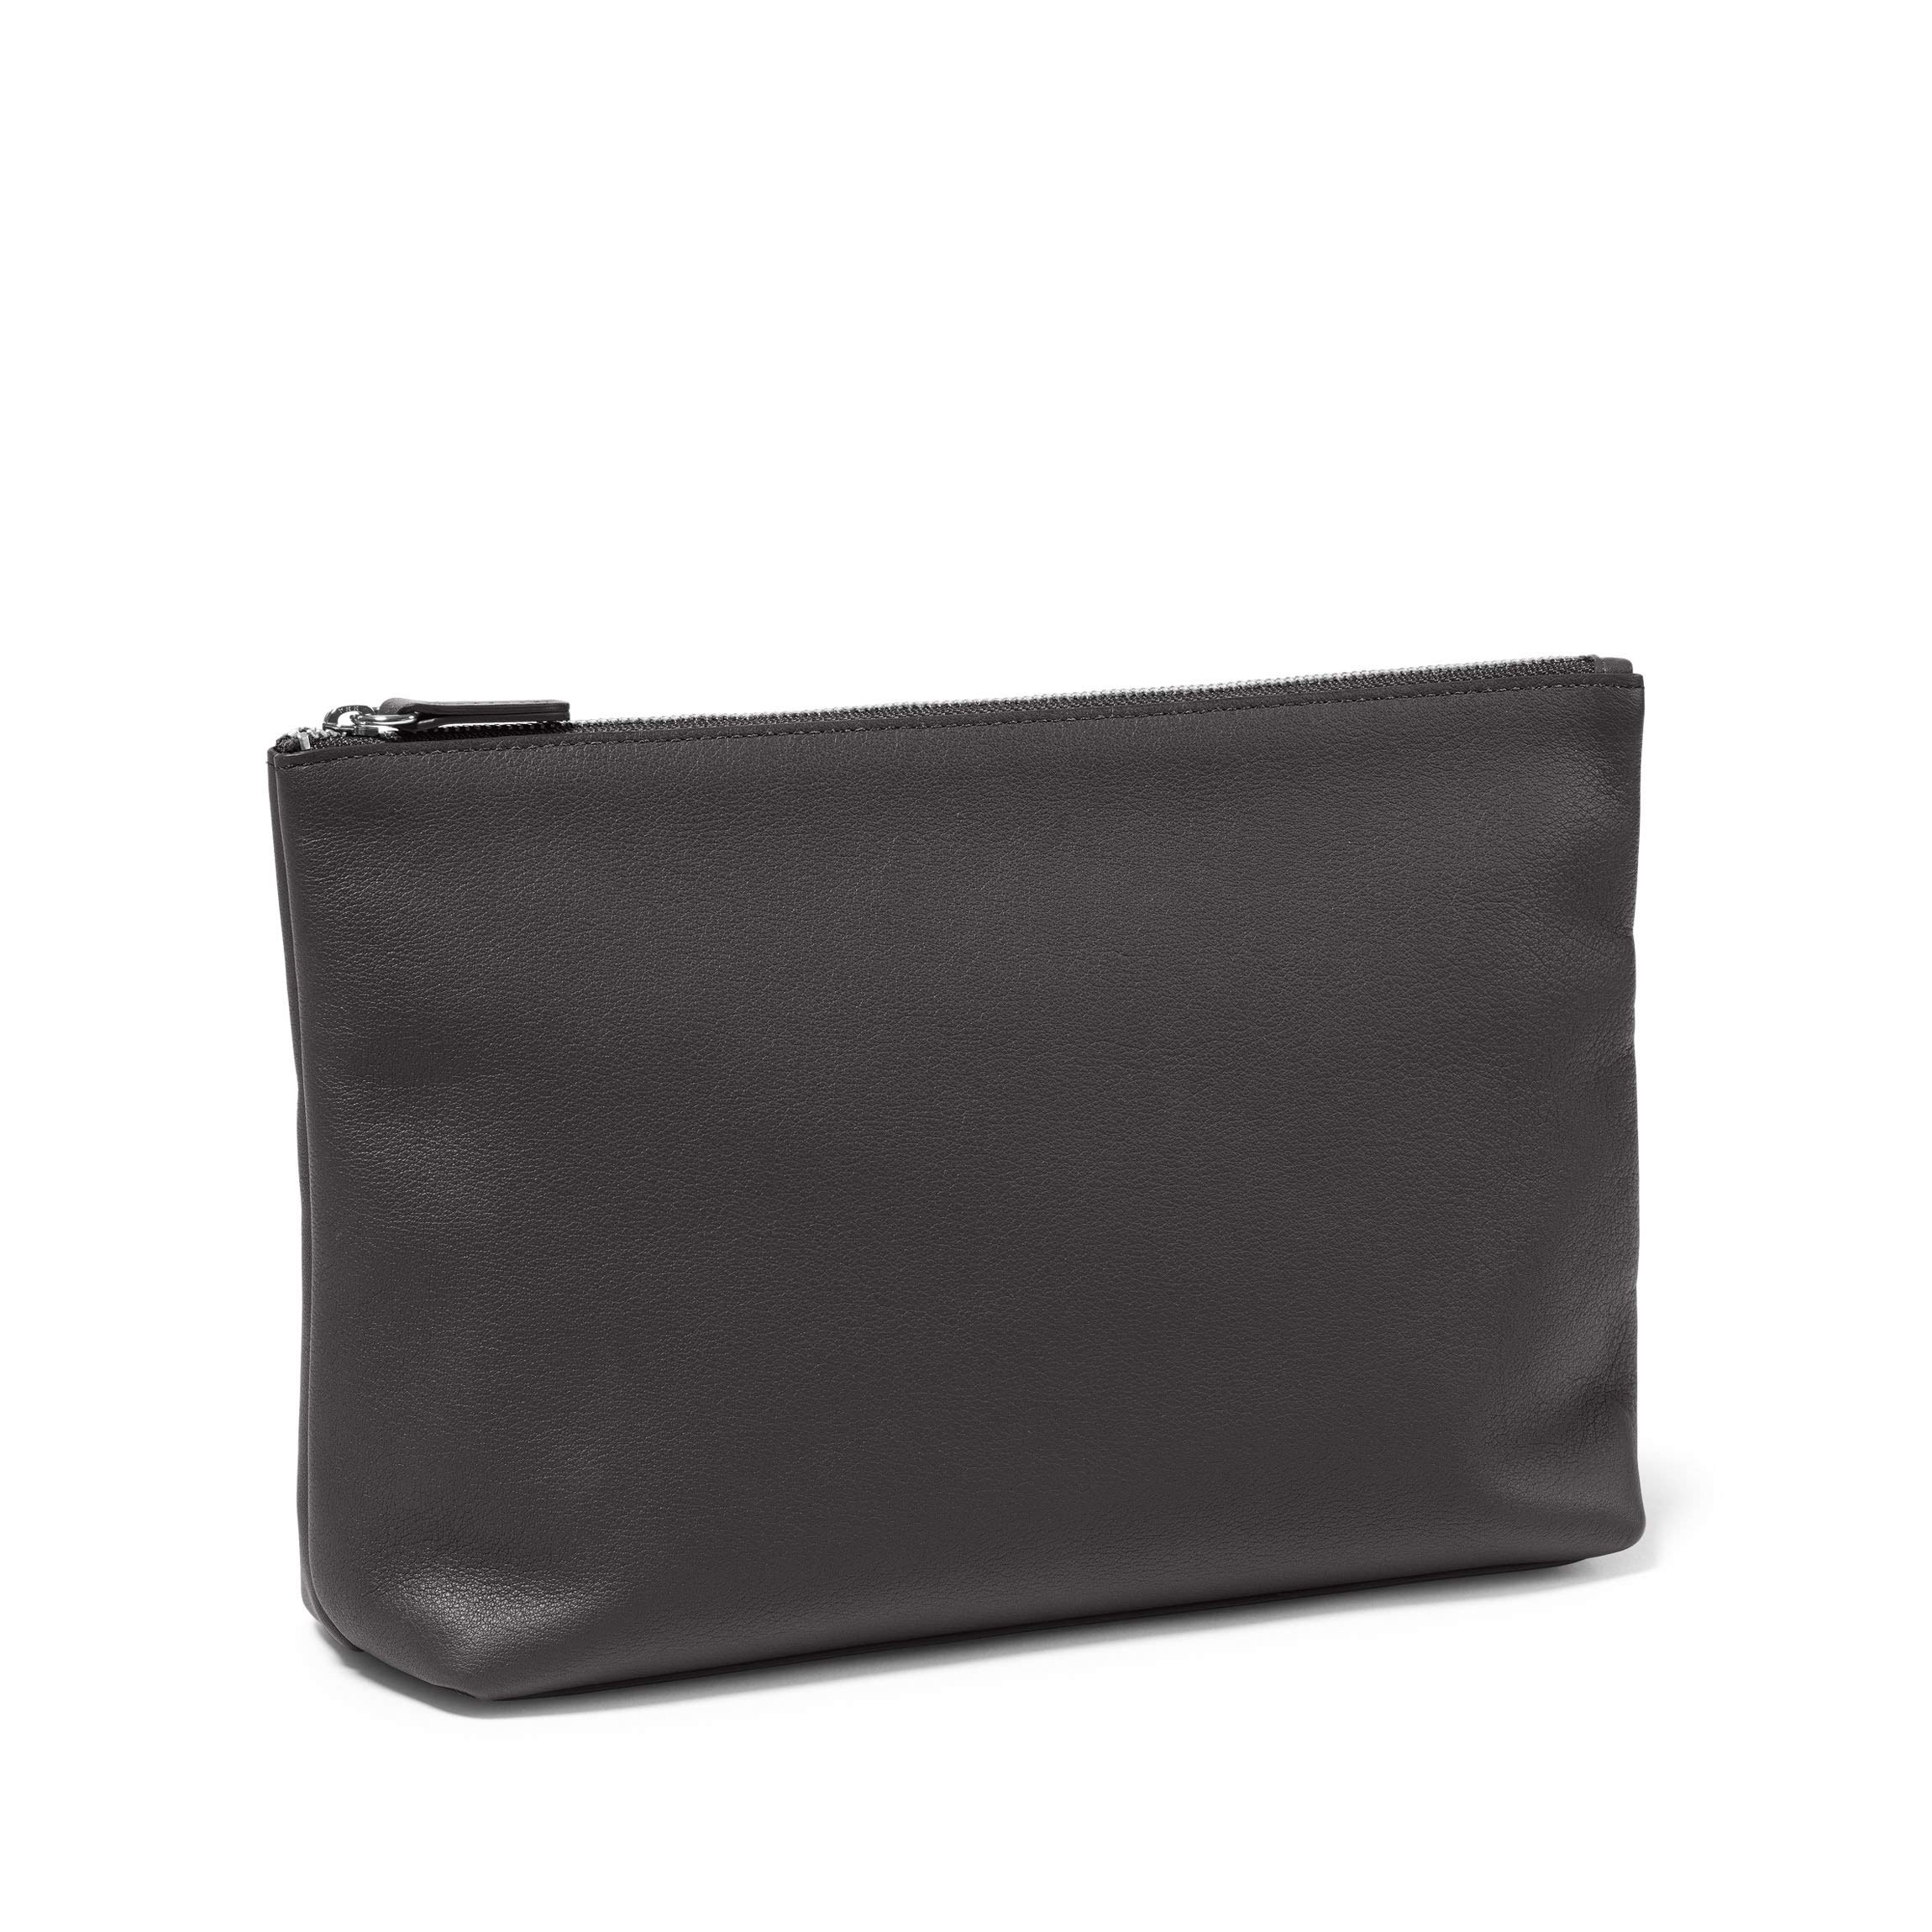 Leatherology Black Onyx Large Accessories Pouch by Leatherology